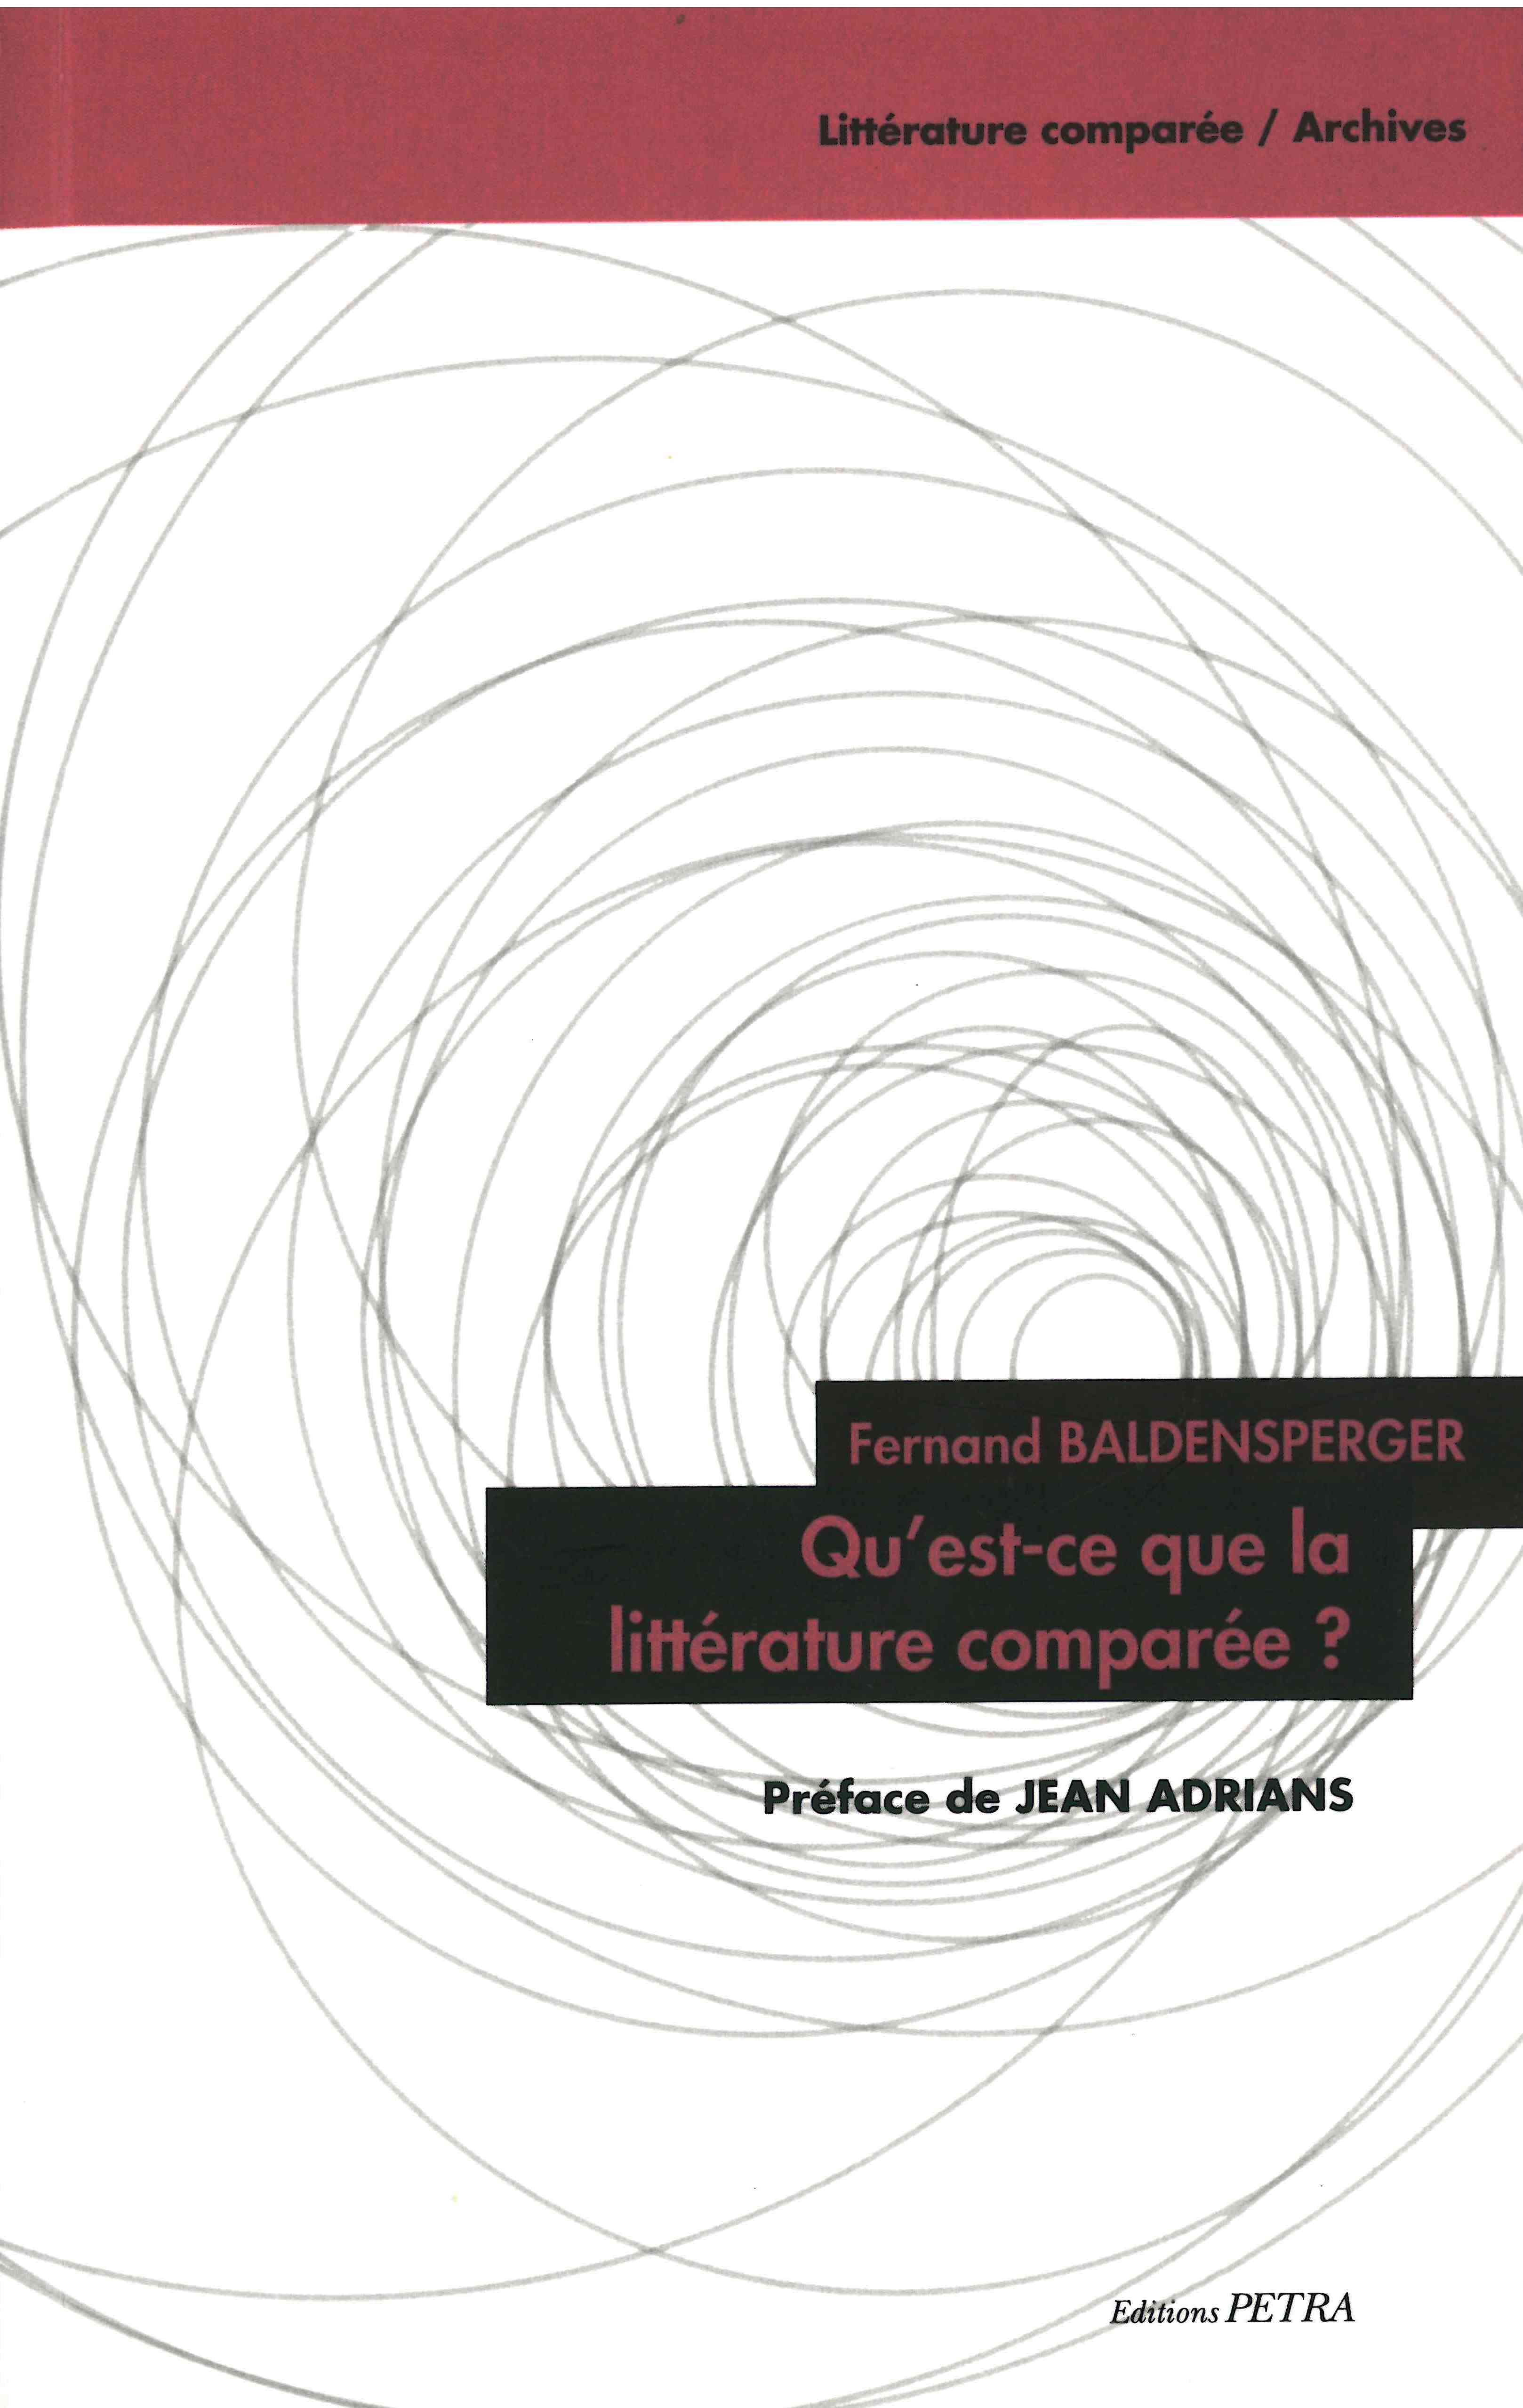 shop Feminist Cyberspaces: Pedagogies in Transition 2012